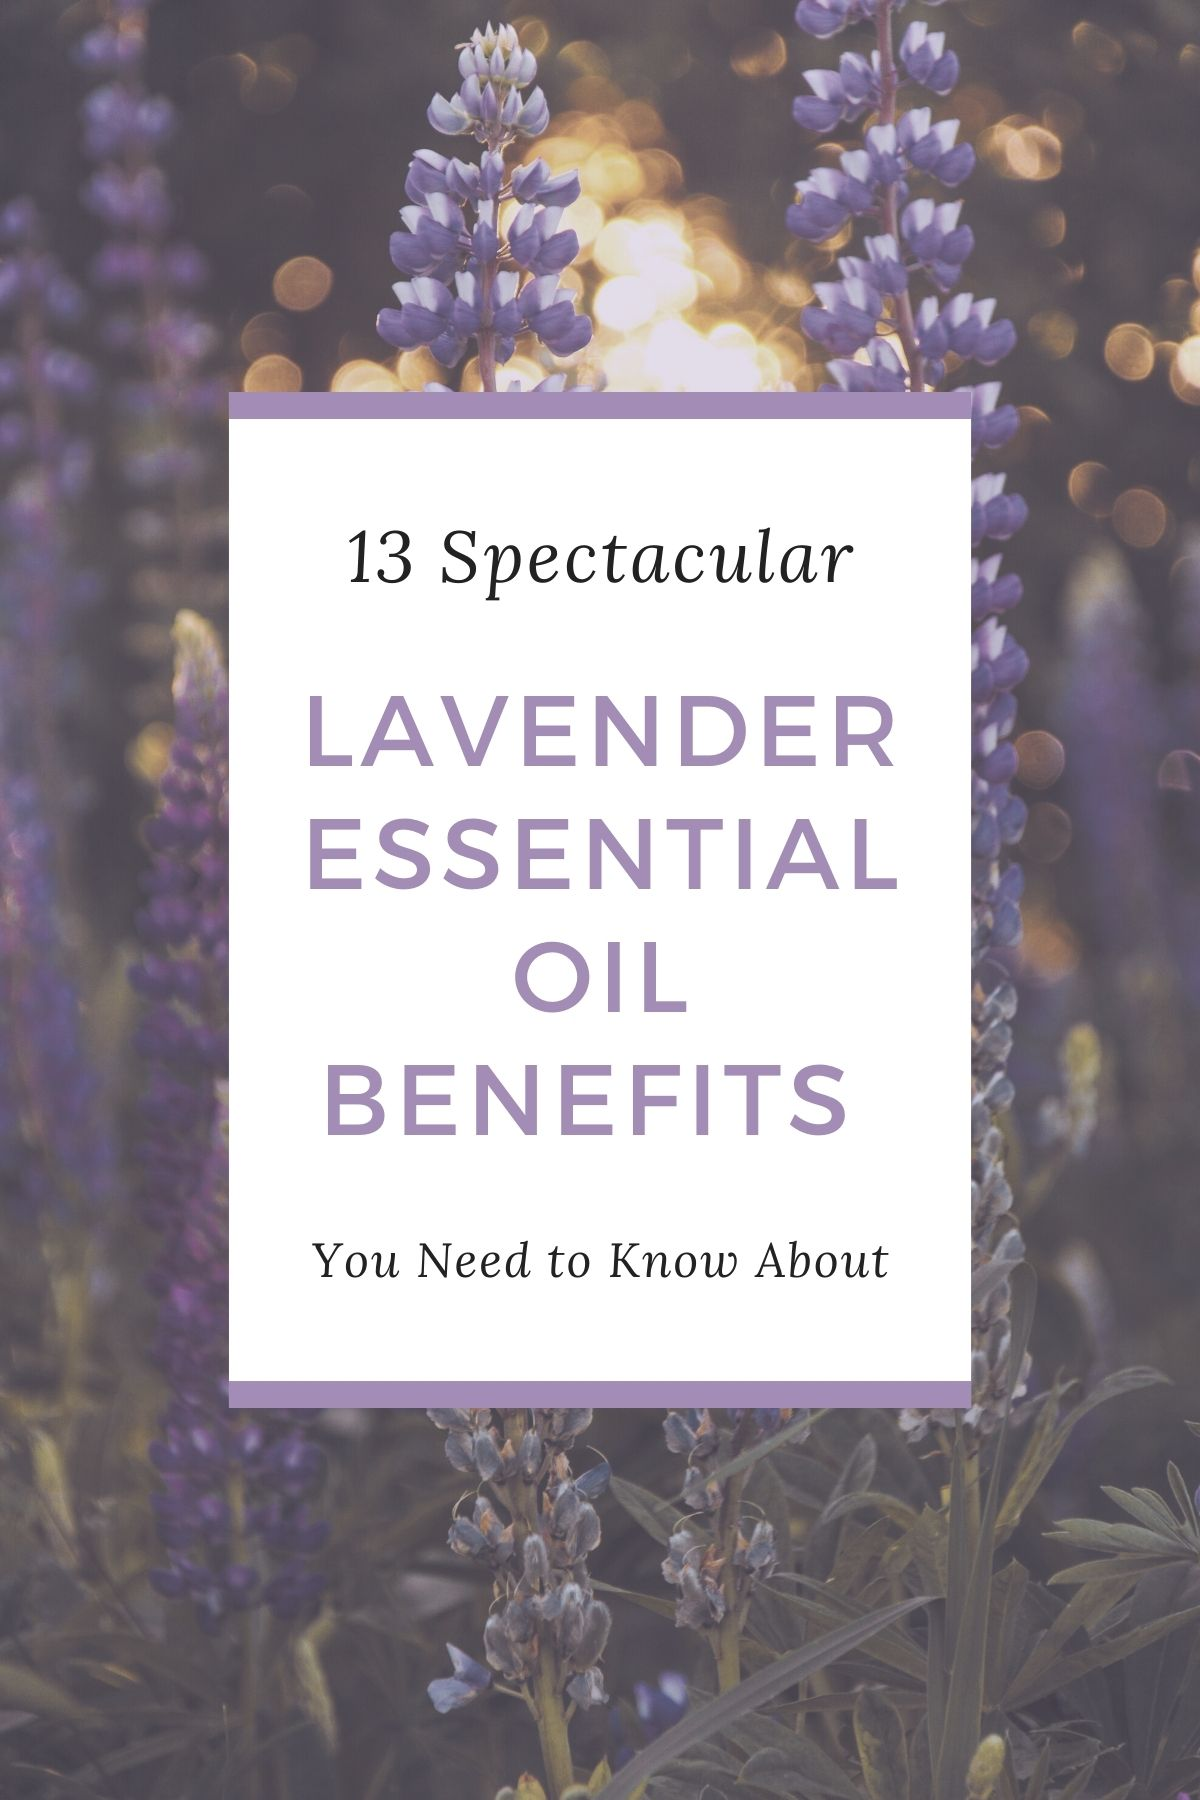 13 Spectacular Lavender Essential Oil Benefits You Need to Know About from Top US Lifestyle Blogger Tabitha Blue of Fresh Mommy Blog. | Lavender Essential Oil by popular Florida lifestyle blog, Fresh Mommy Blog: Pinterest image of Spark Naturals lavender essential oil benefits.